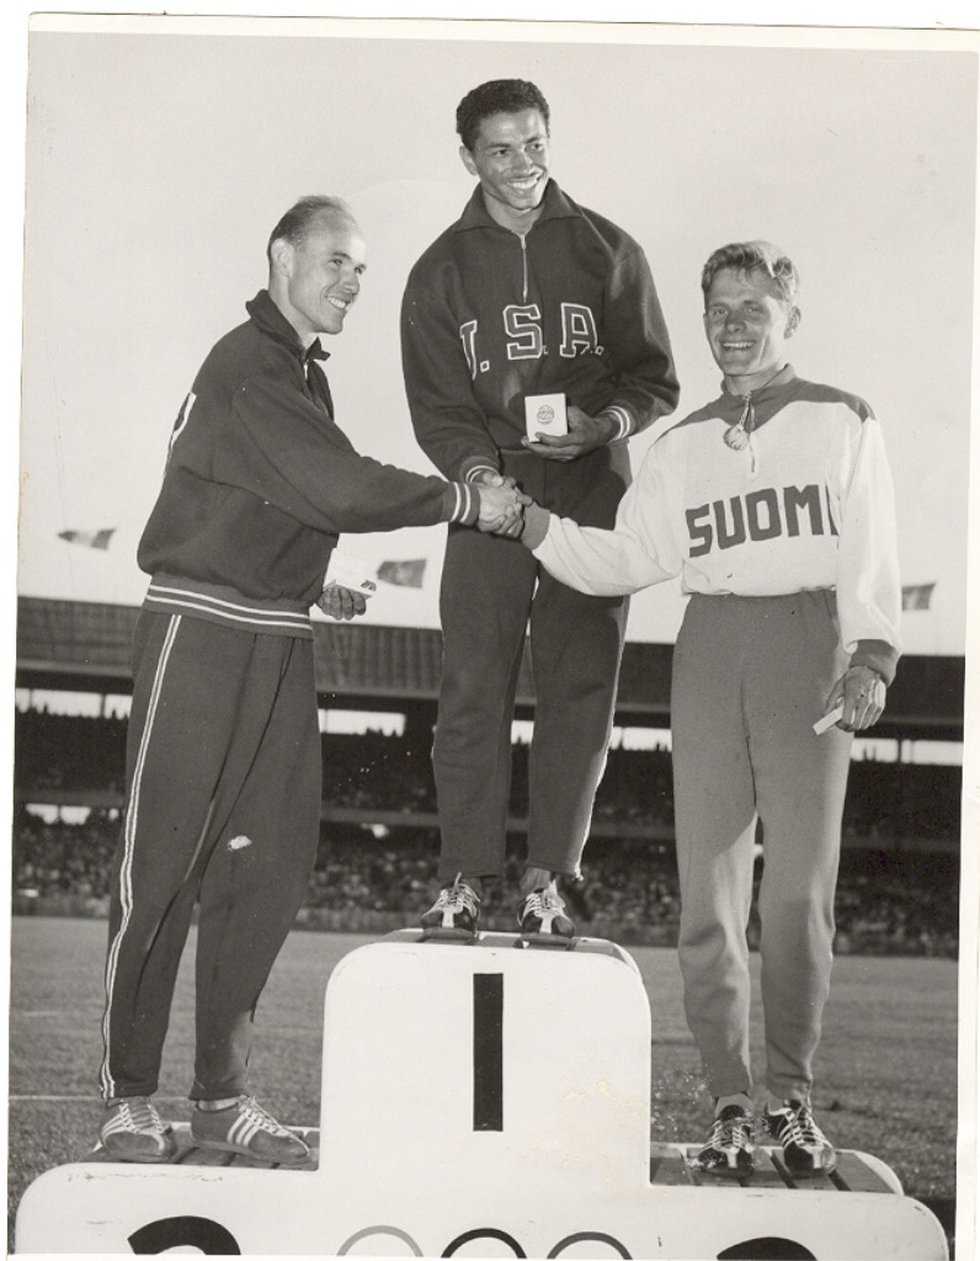 Bennett poses on the Olympic podium with the two other medal winners from the long jump event...